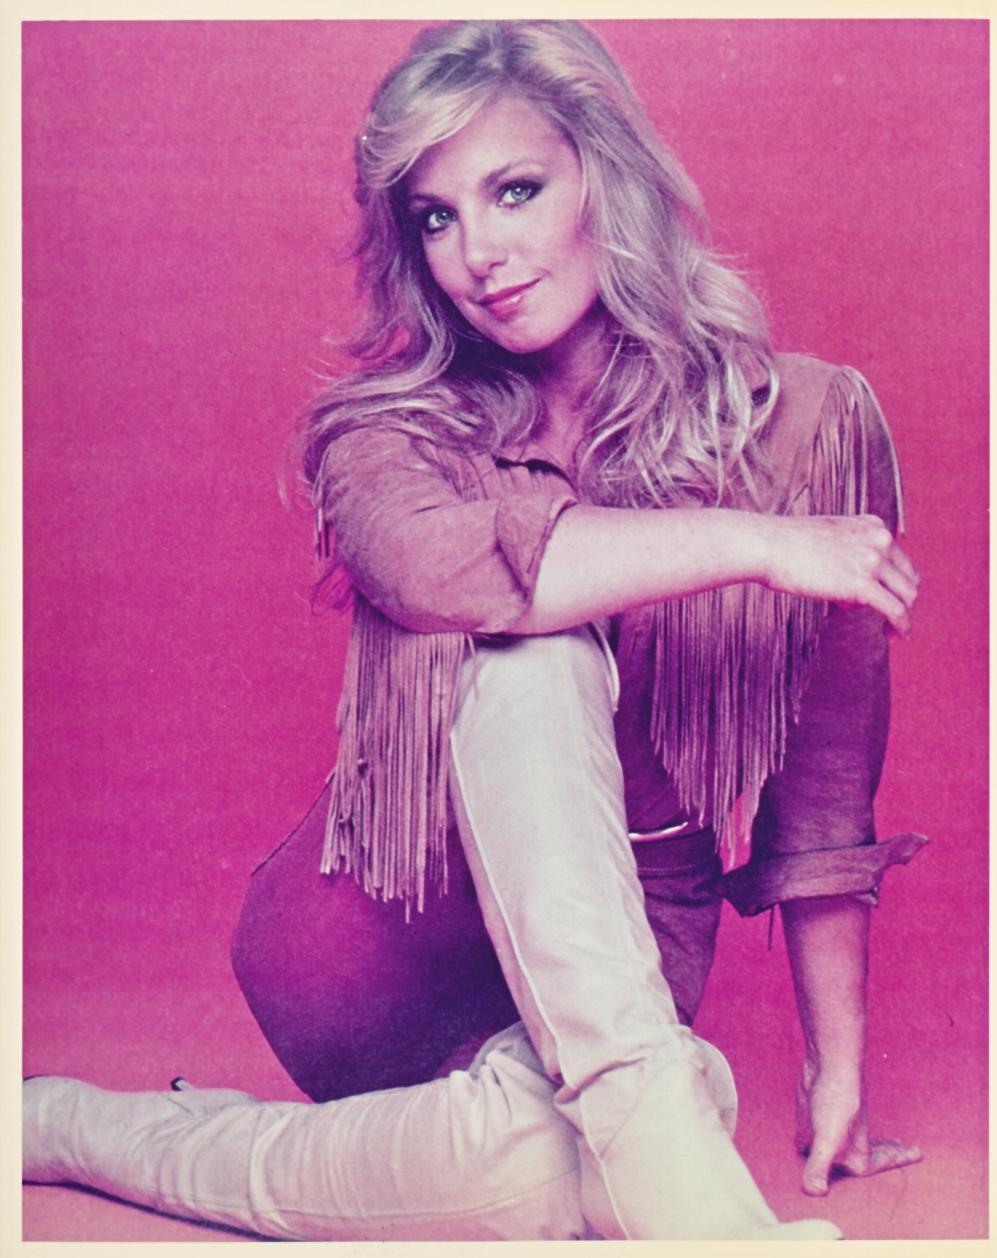 Heather Thomas Fringed Top  8x10 Photo